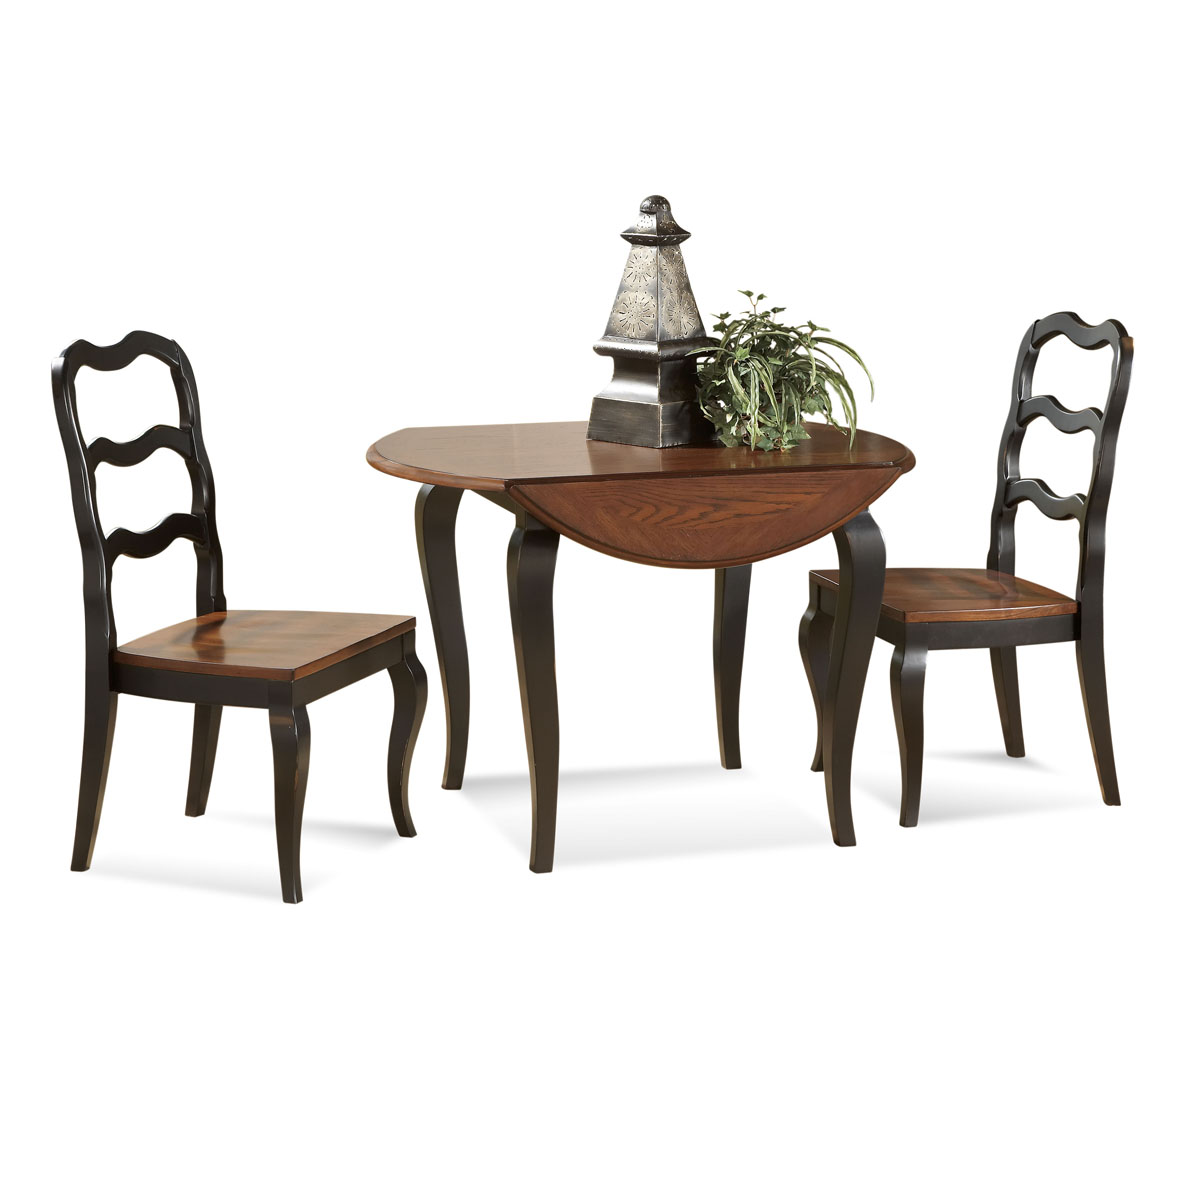 5 styles of drop leaf dining table for small spaces for Dining table for small house